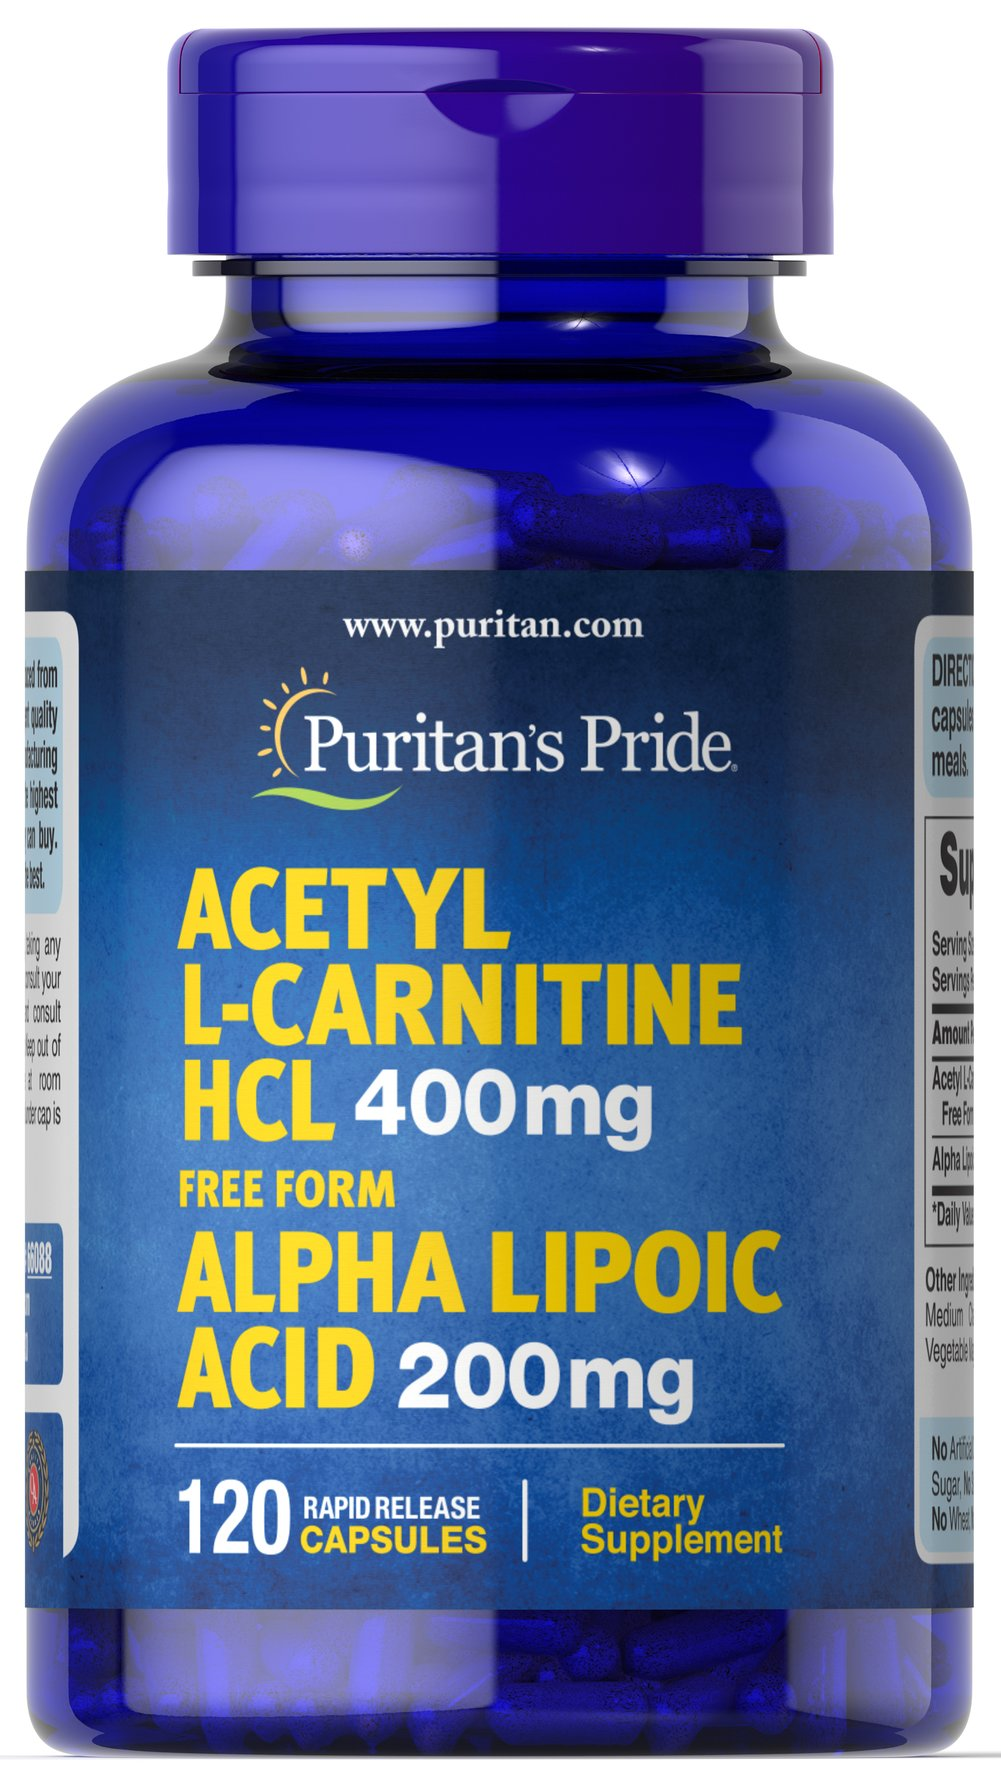 Acetyl L-Carnitine 400 mg with Alpha Lipoic Acid 200 mg <p>Supports Antioxidant Health**</p><p>Supports Metabolic Functioning**</p><p>Use as part of your healthy aging program**</p><p>As we age, our cells are less able to counteract the cell-damaging effects of free radicals and oxidative stress. Oxidative stress can lead to the premature aging of cells.</p> 120 Capsules 400 mg/200 mg $67.99